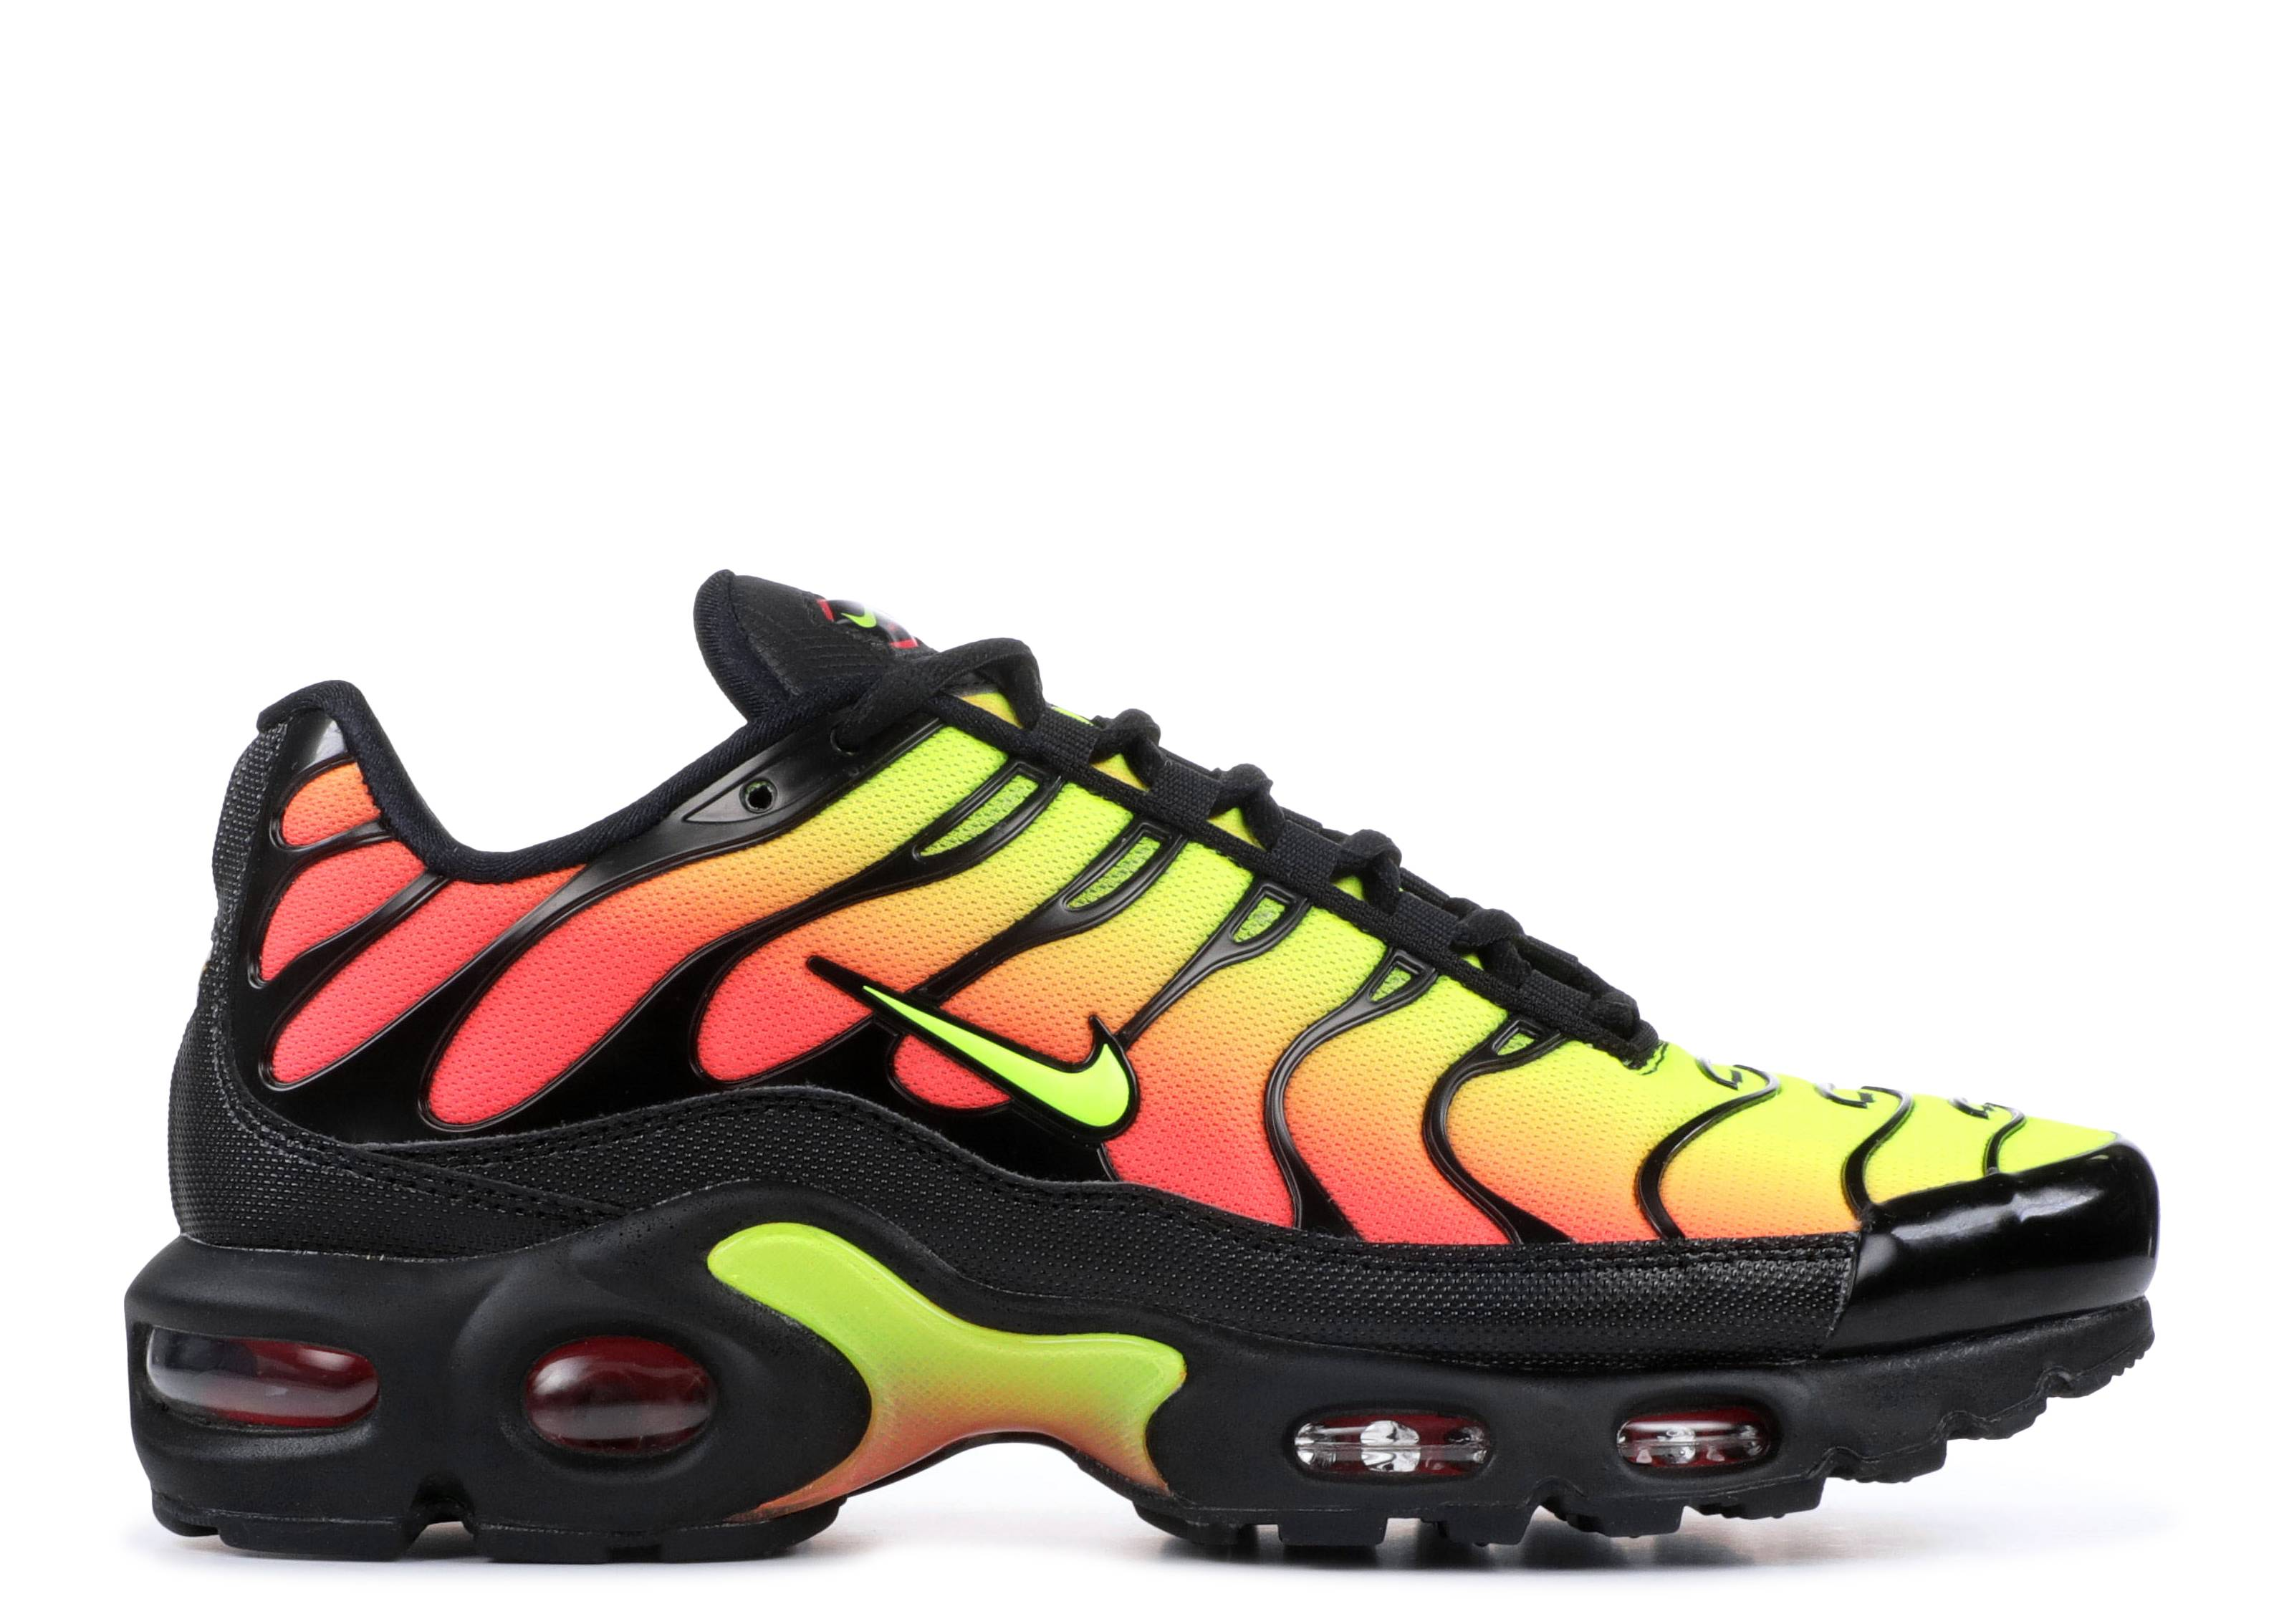 873b6e72220 WMNS AIR MAX PLUS TN SE - Nike - aq9979 001 - black volt-solar red ...